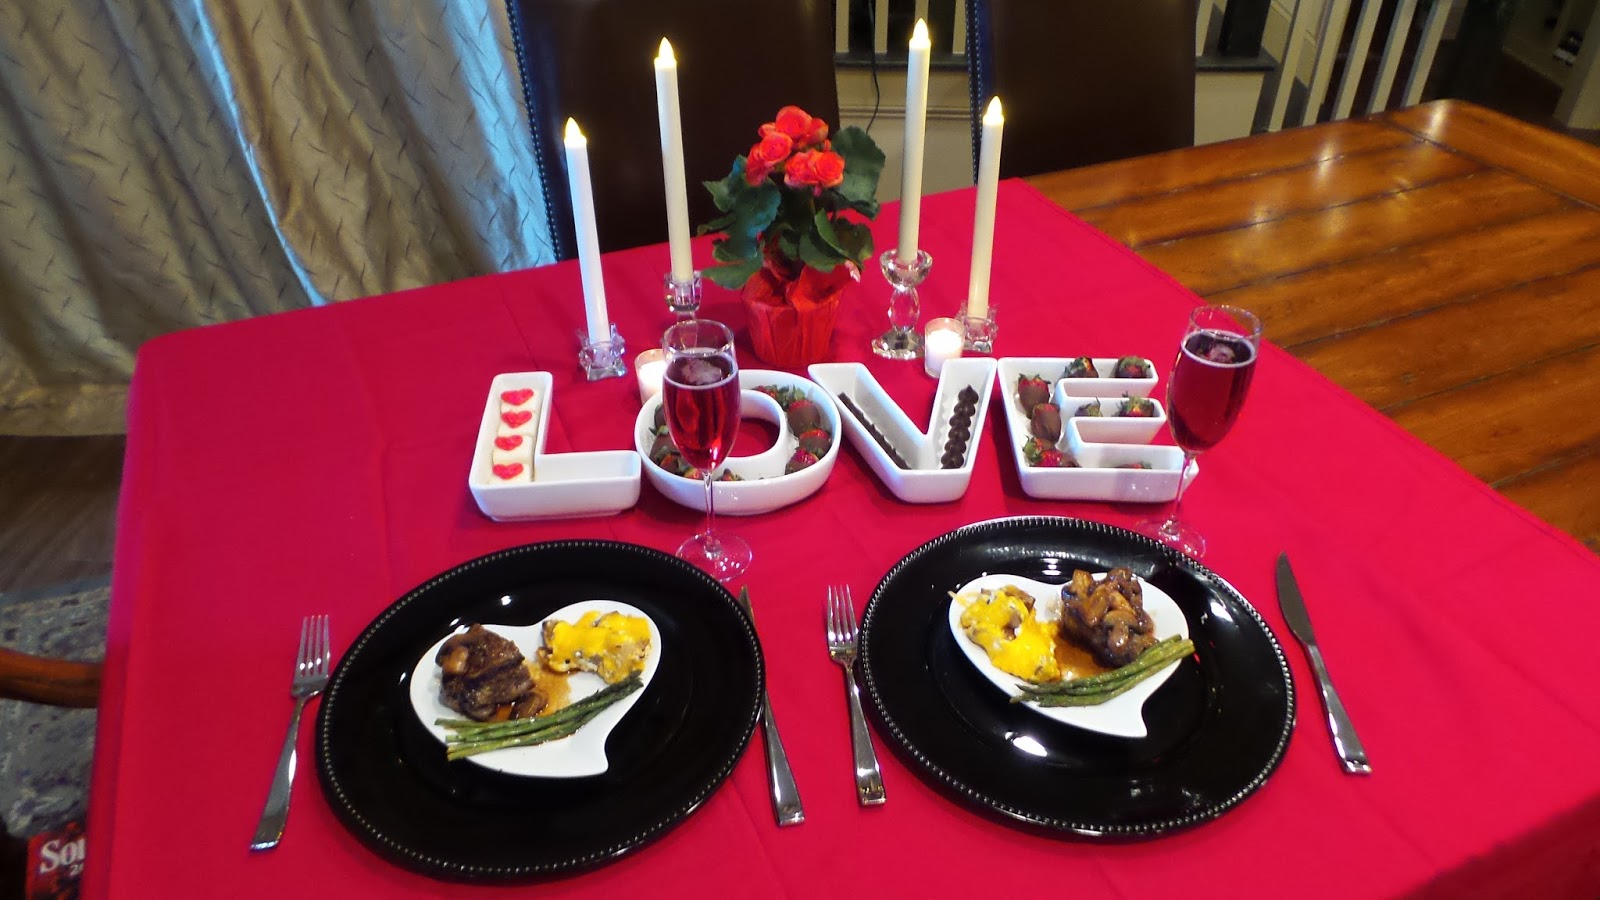 Romantic valentines meals at home - Dream Home Cooking Girl